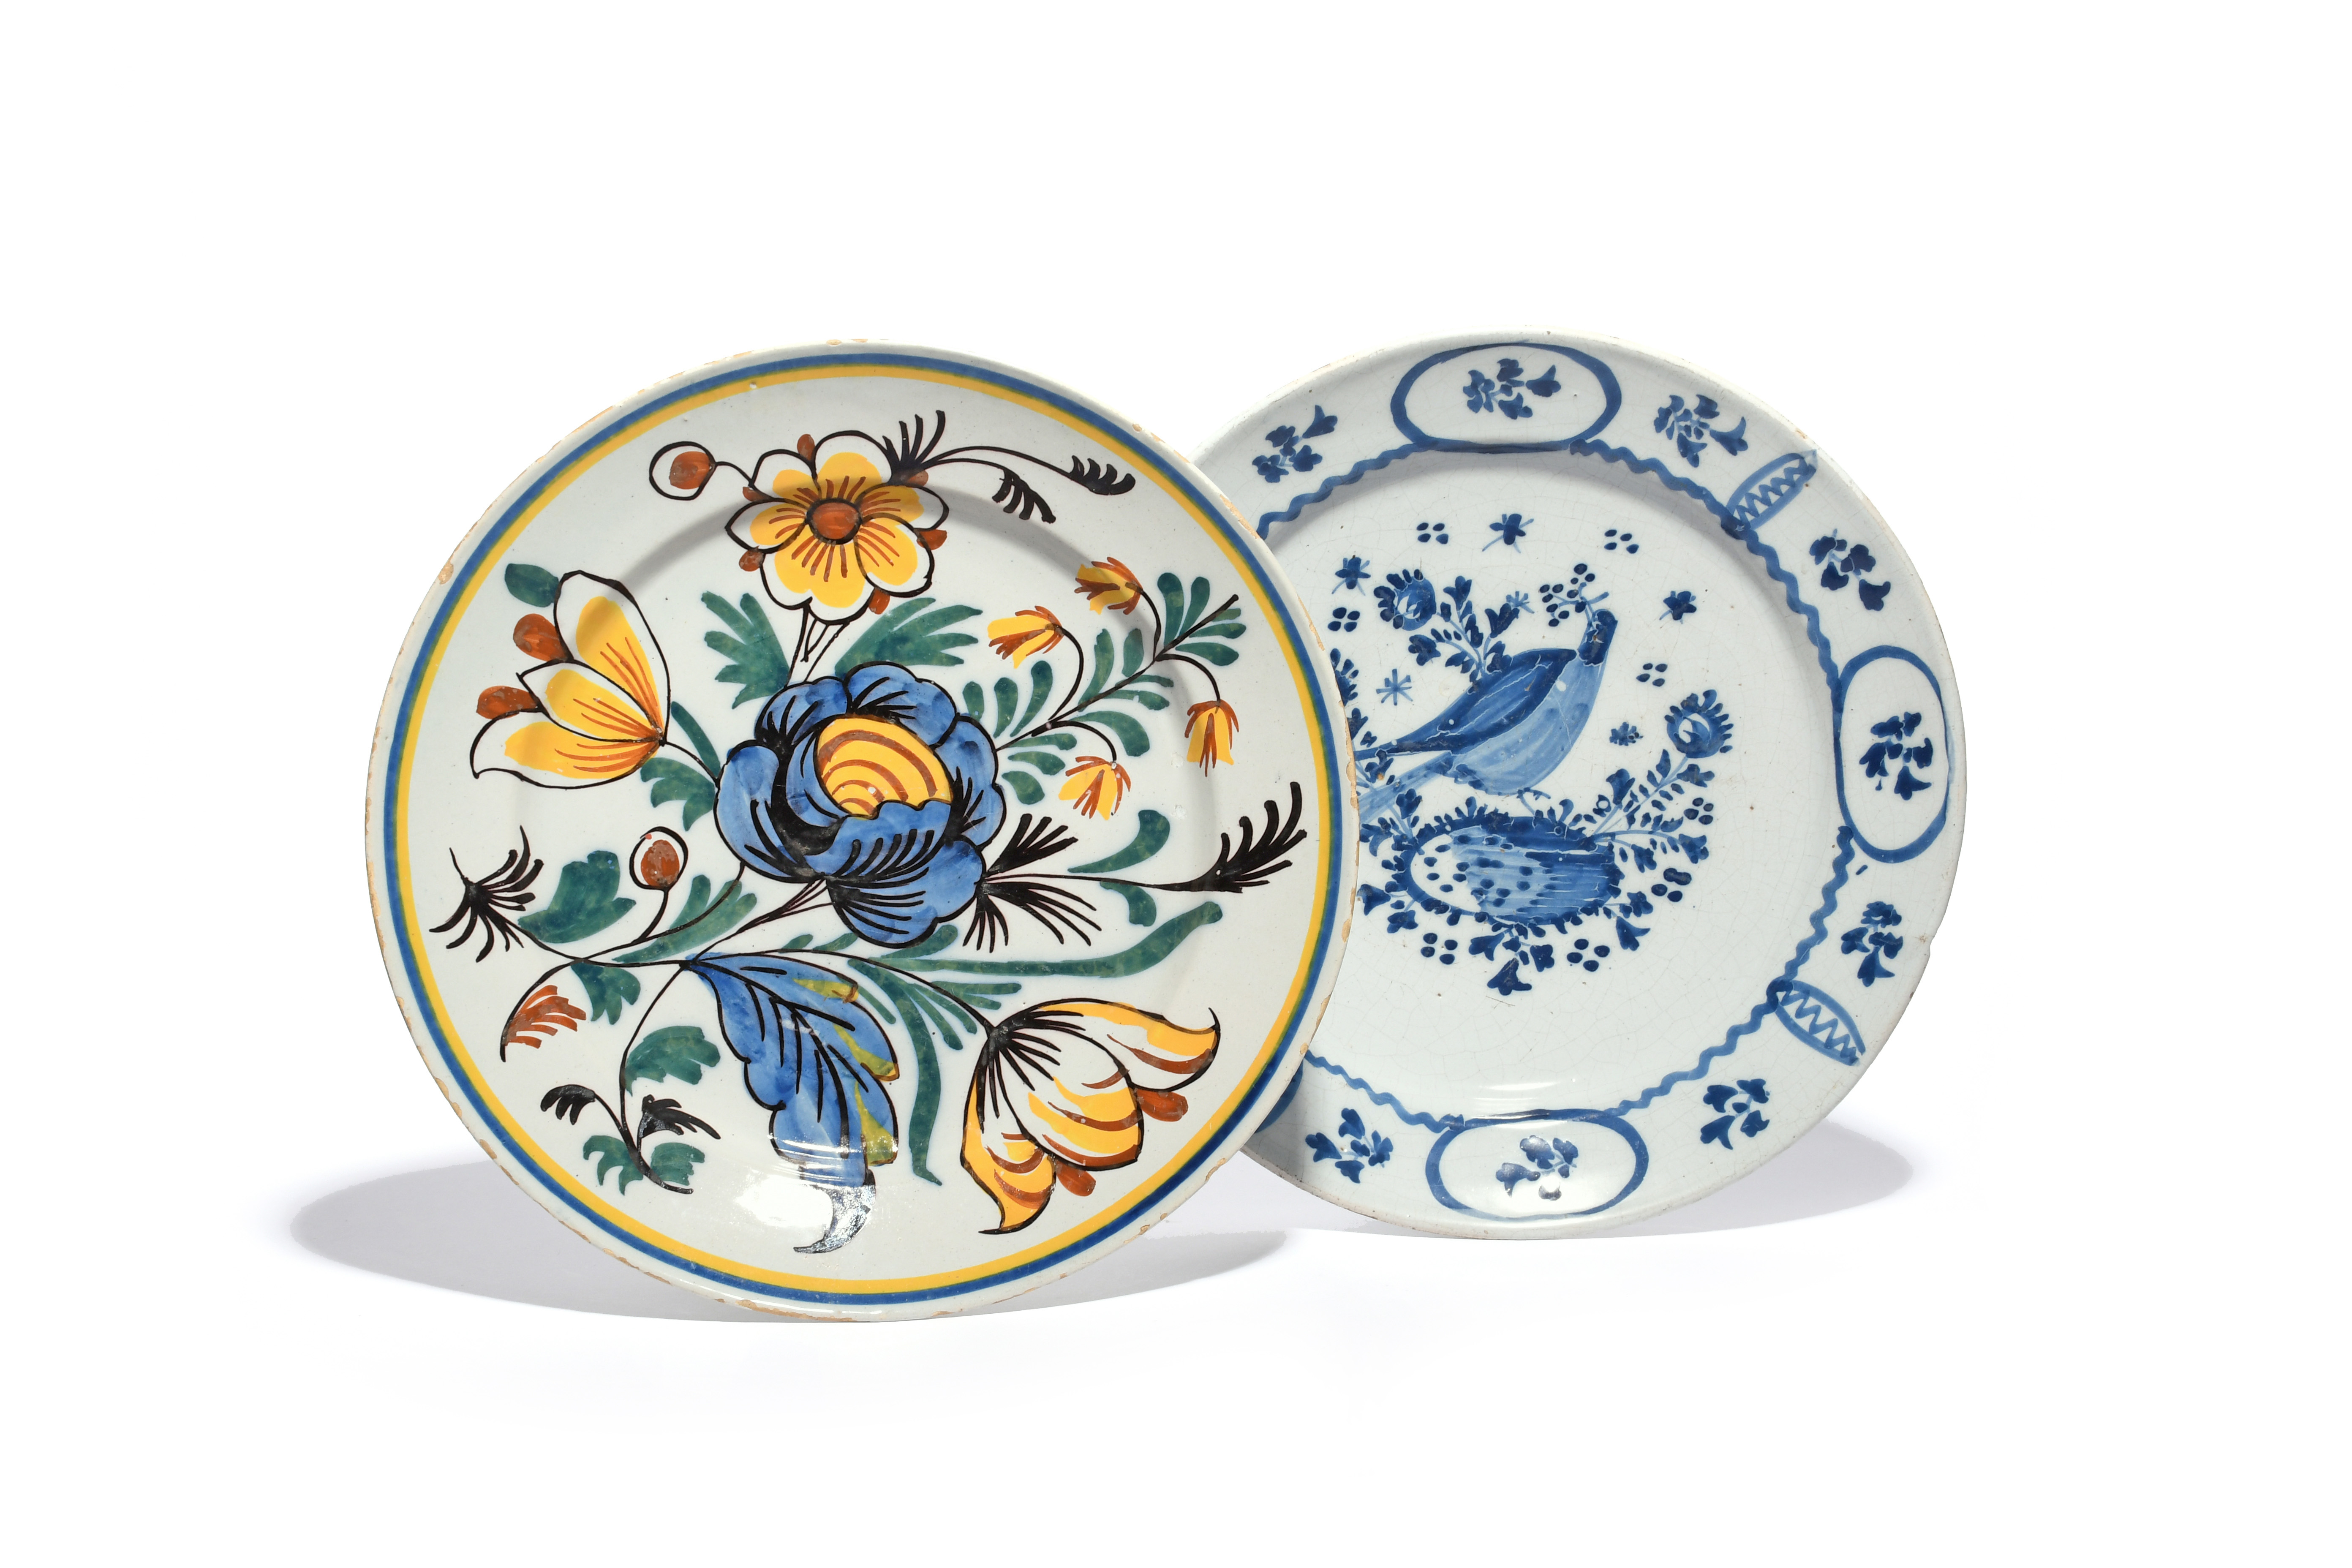 Two Delft chargers 18th century, one boldly decorated with tulips and other flowers in polychrome